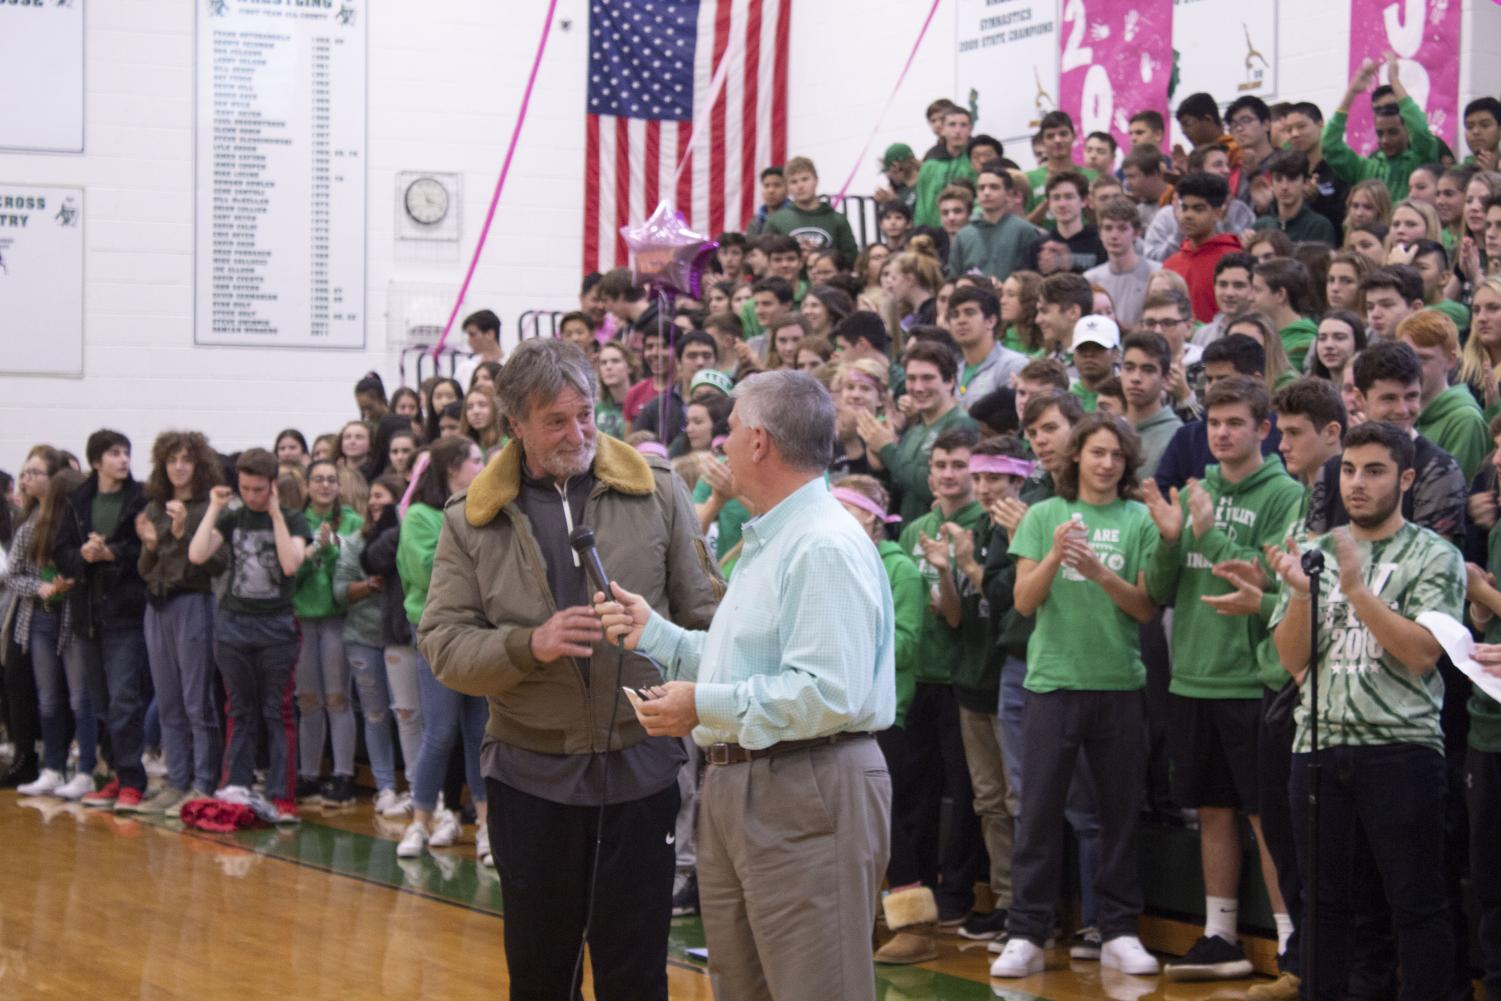 Pascack Valley principal Tom DeMaio with Jeff Jasper. The Pascack Valley new gym basketball court was renamed Jasper Court in honor of Jasper at the Nov. 21 Valley Cup assembly.